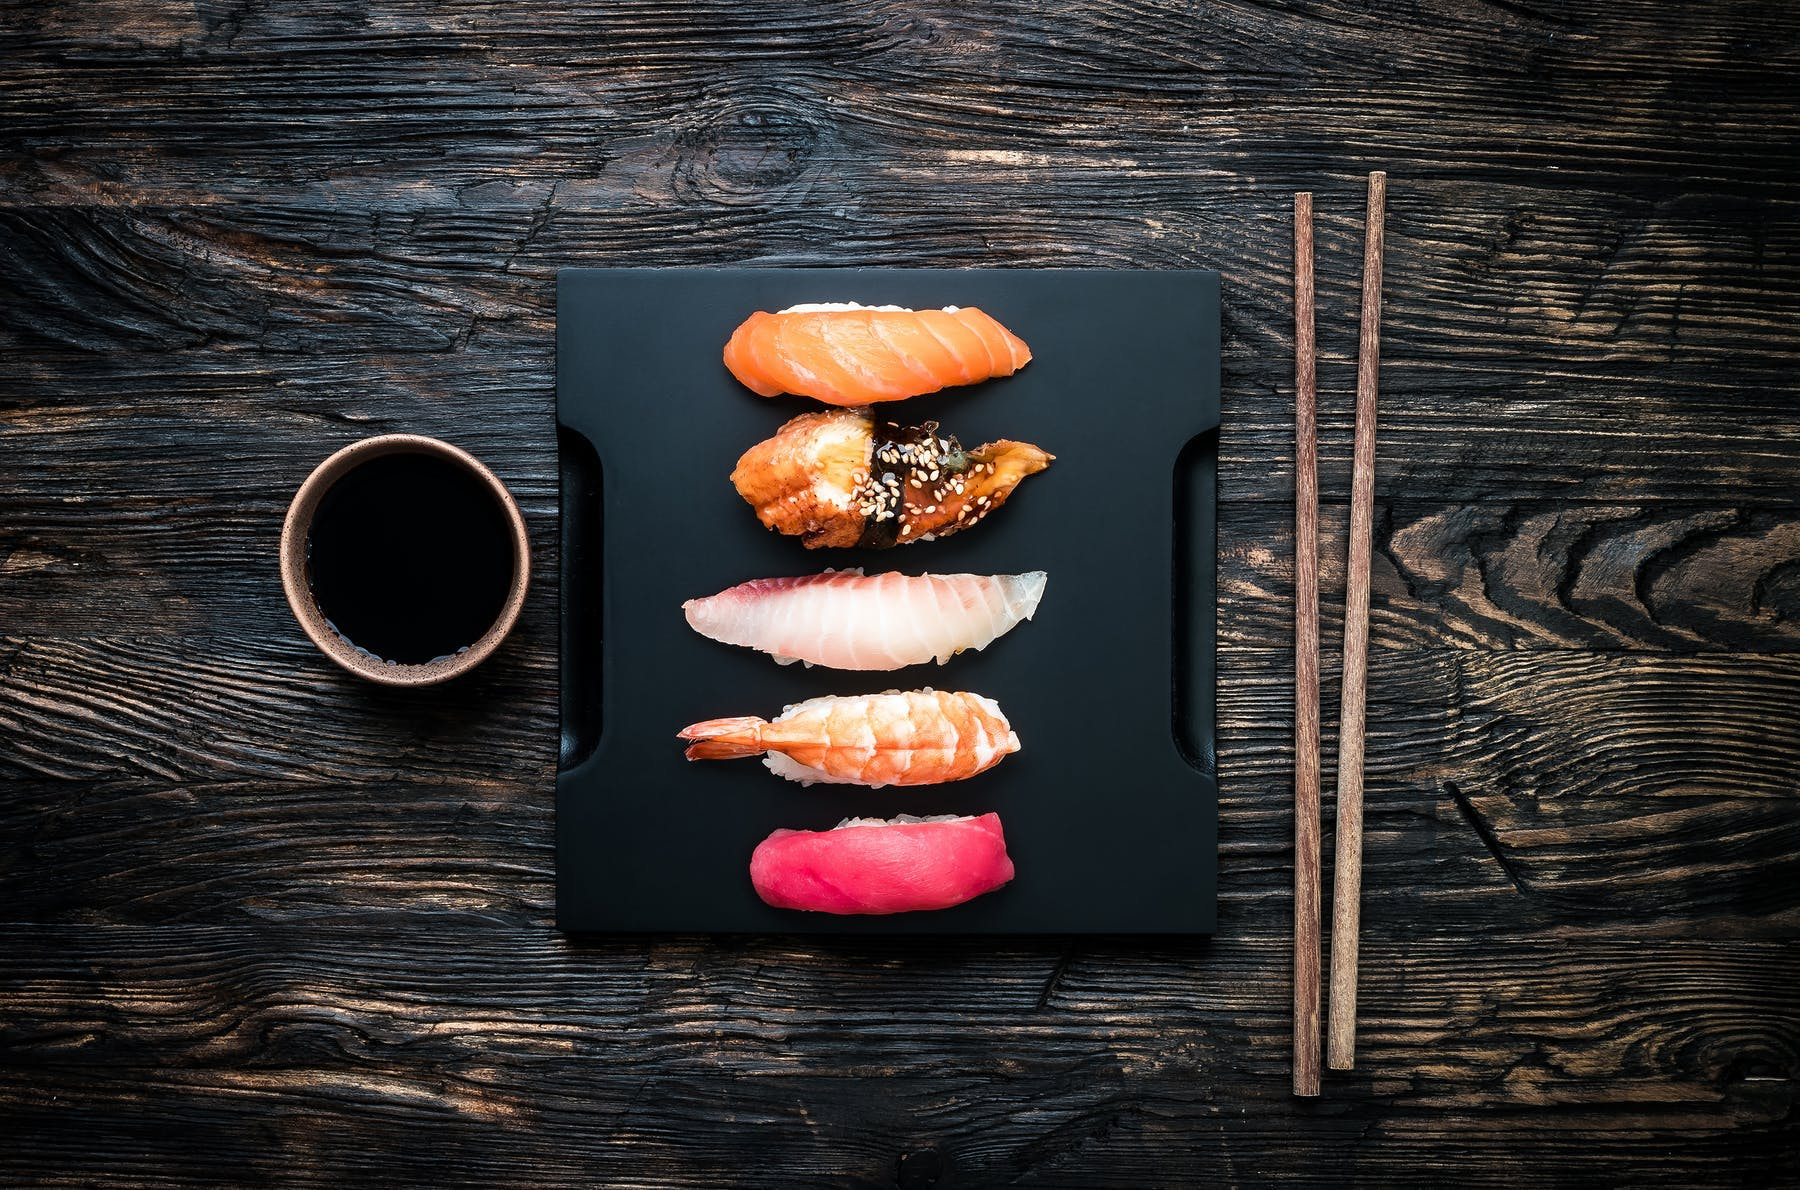 a close up of food on a wooden surface